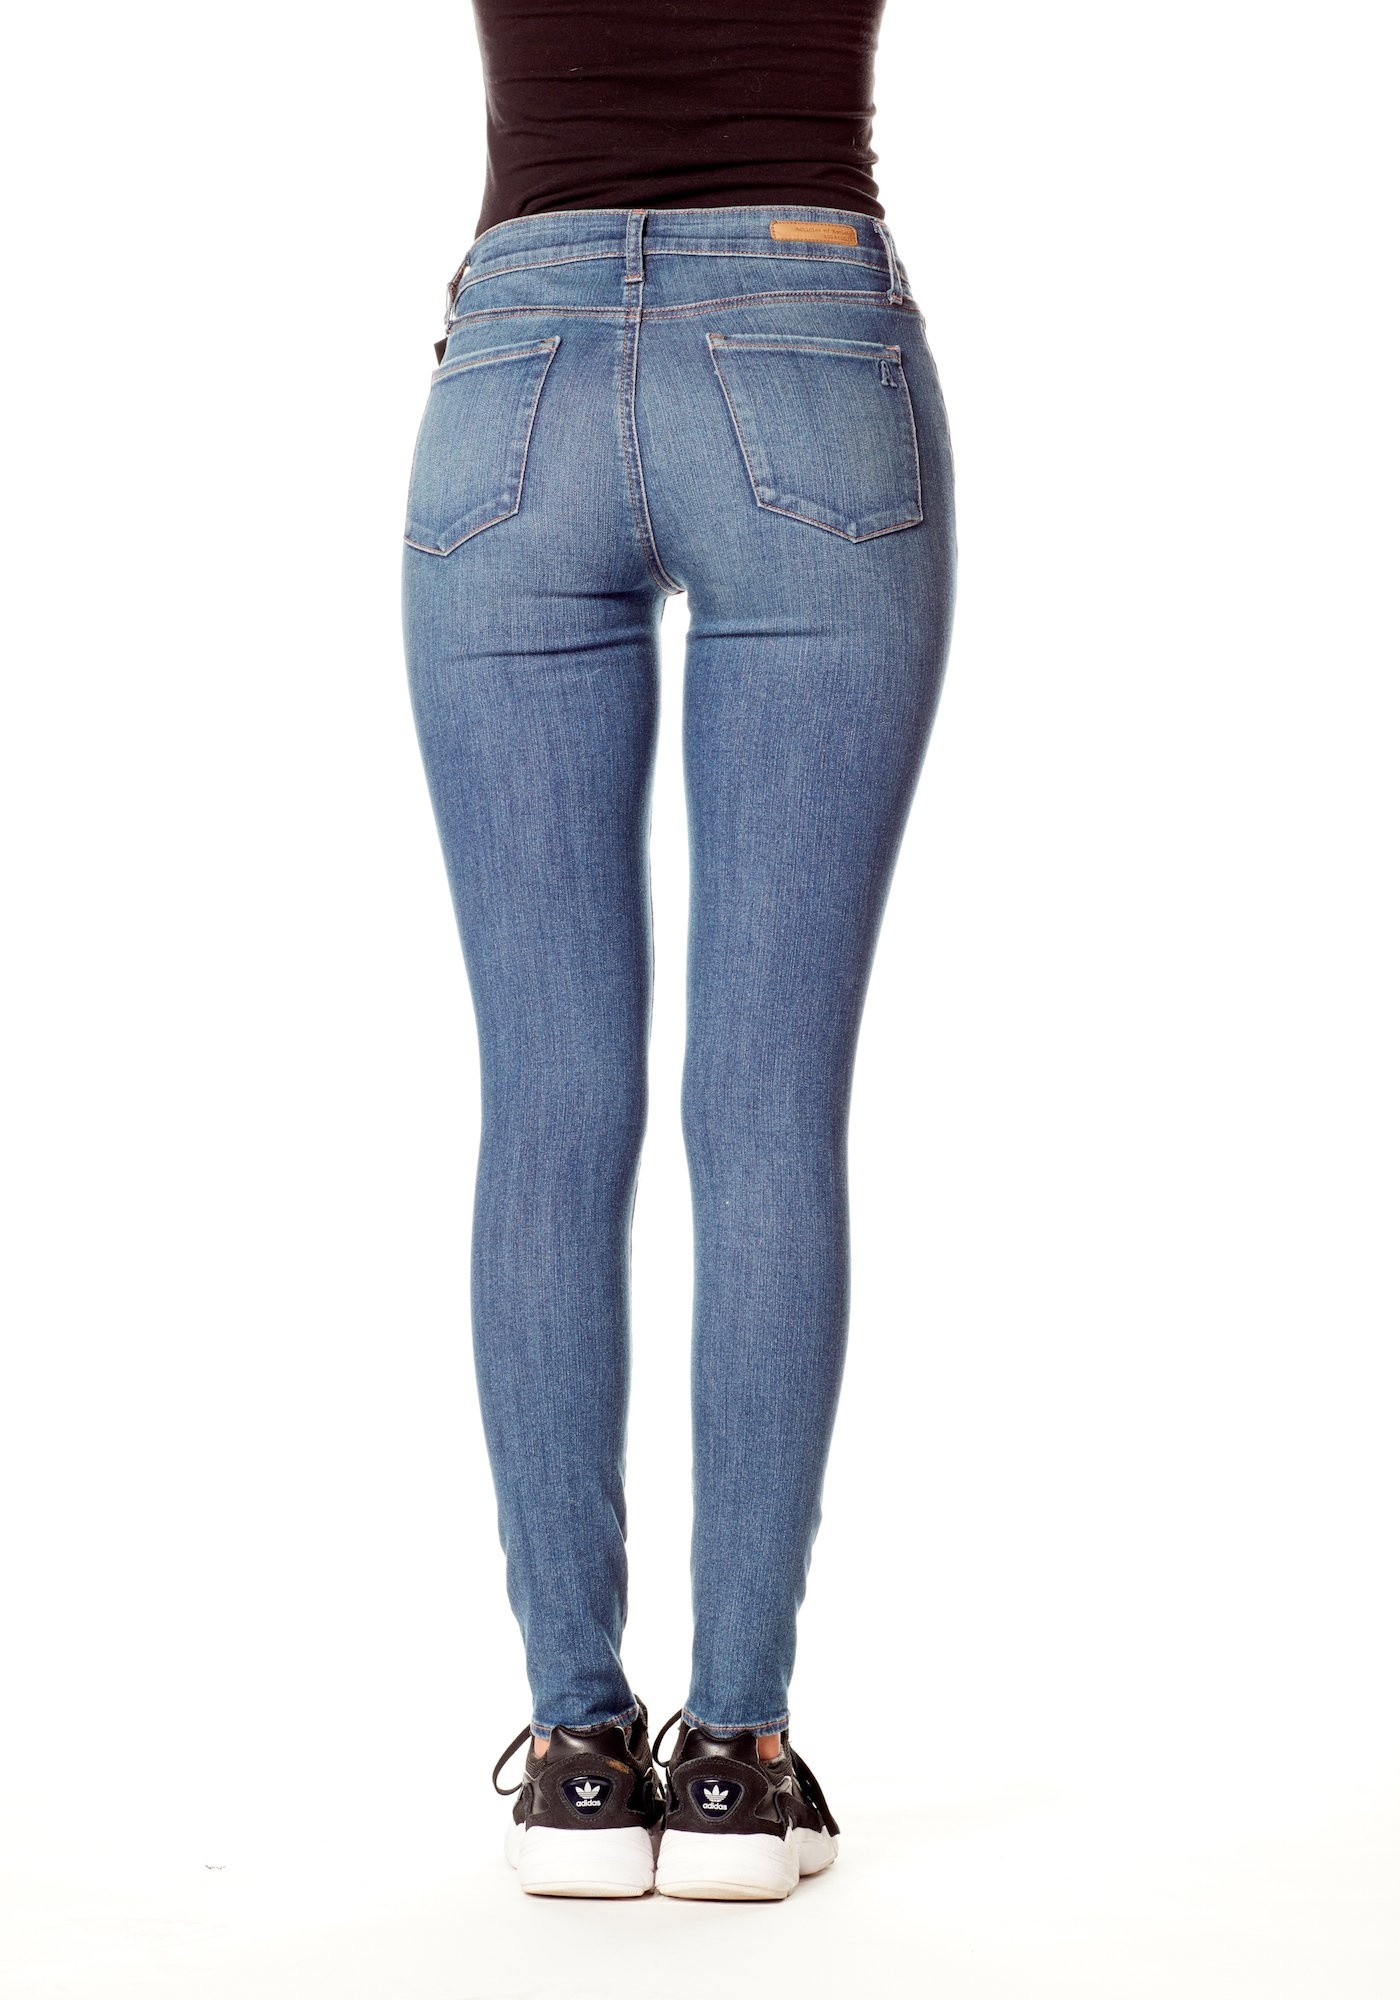 ARTICLES OF SOCIETY Sarah Mid Rise Skinny